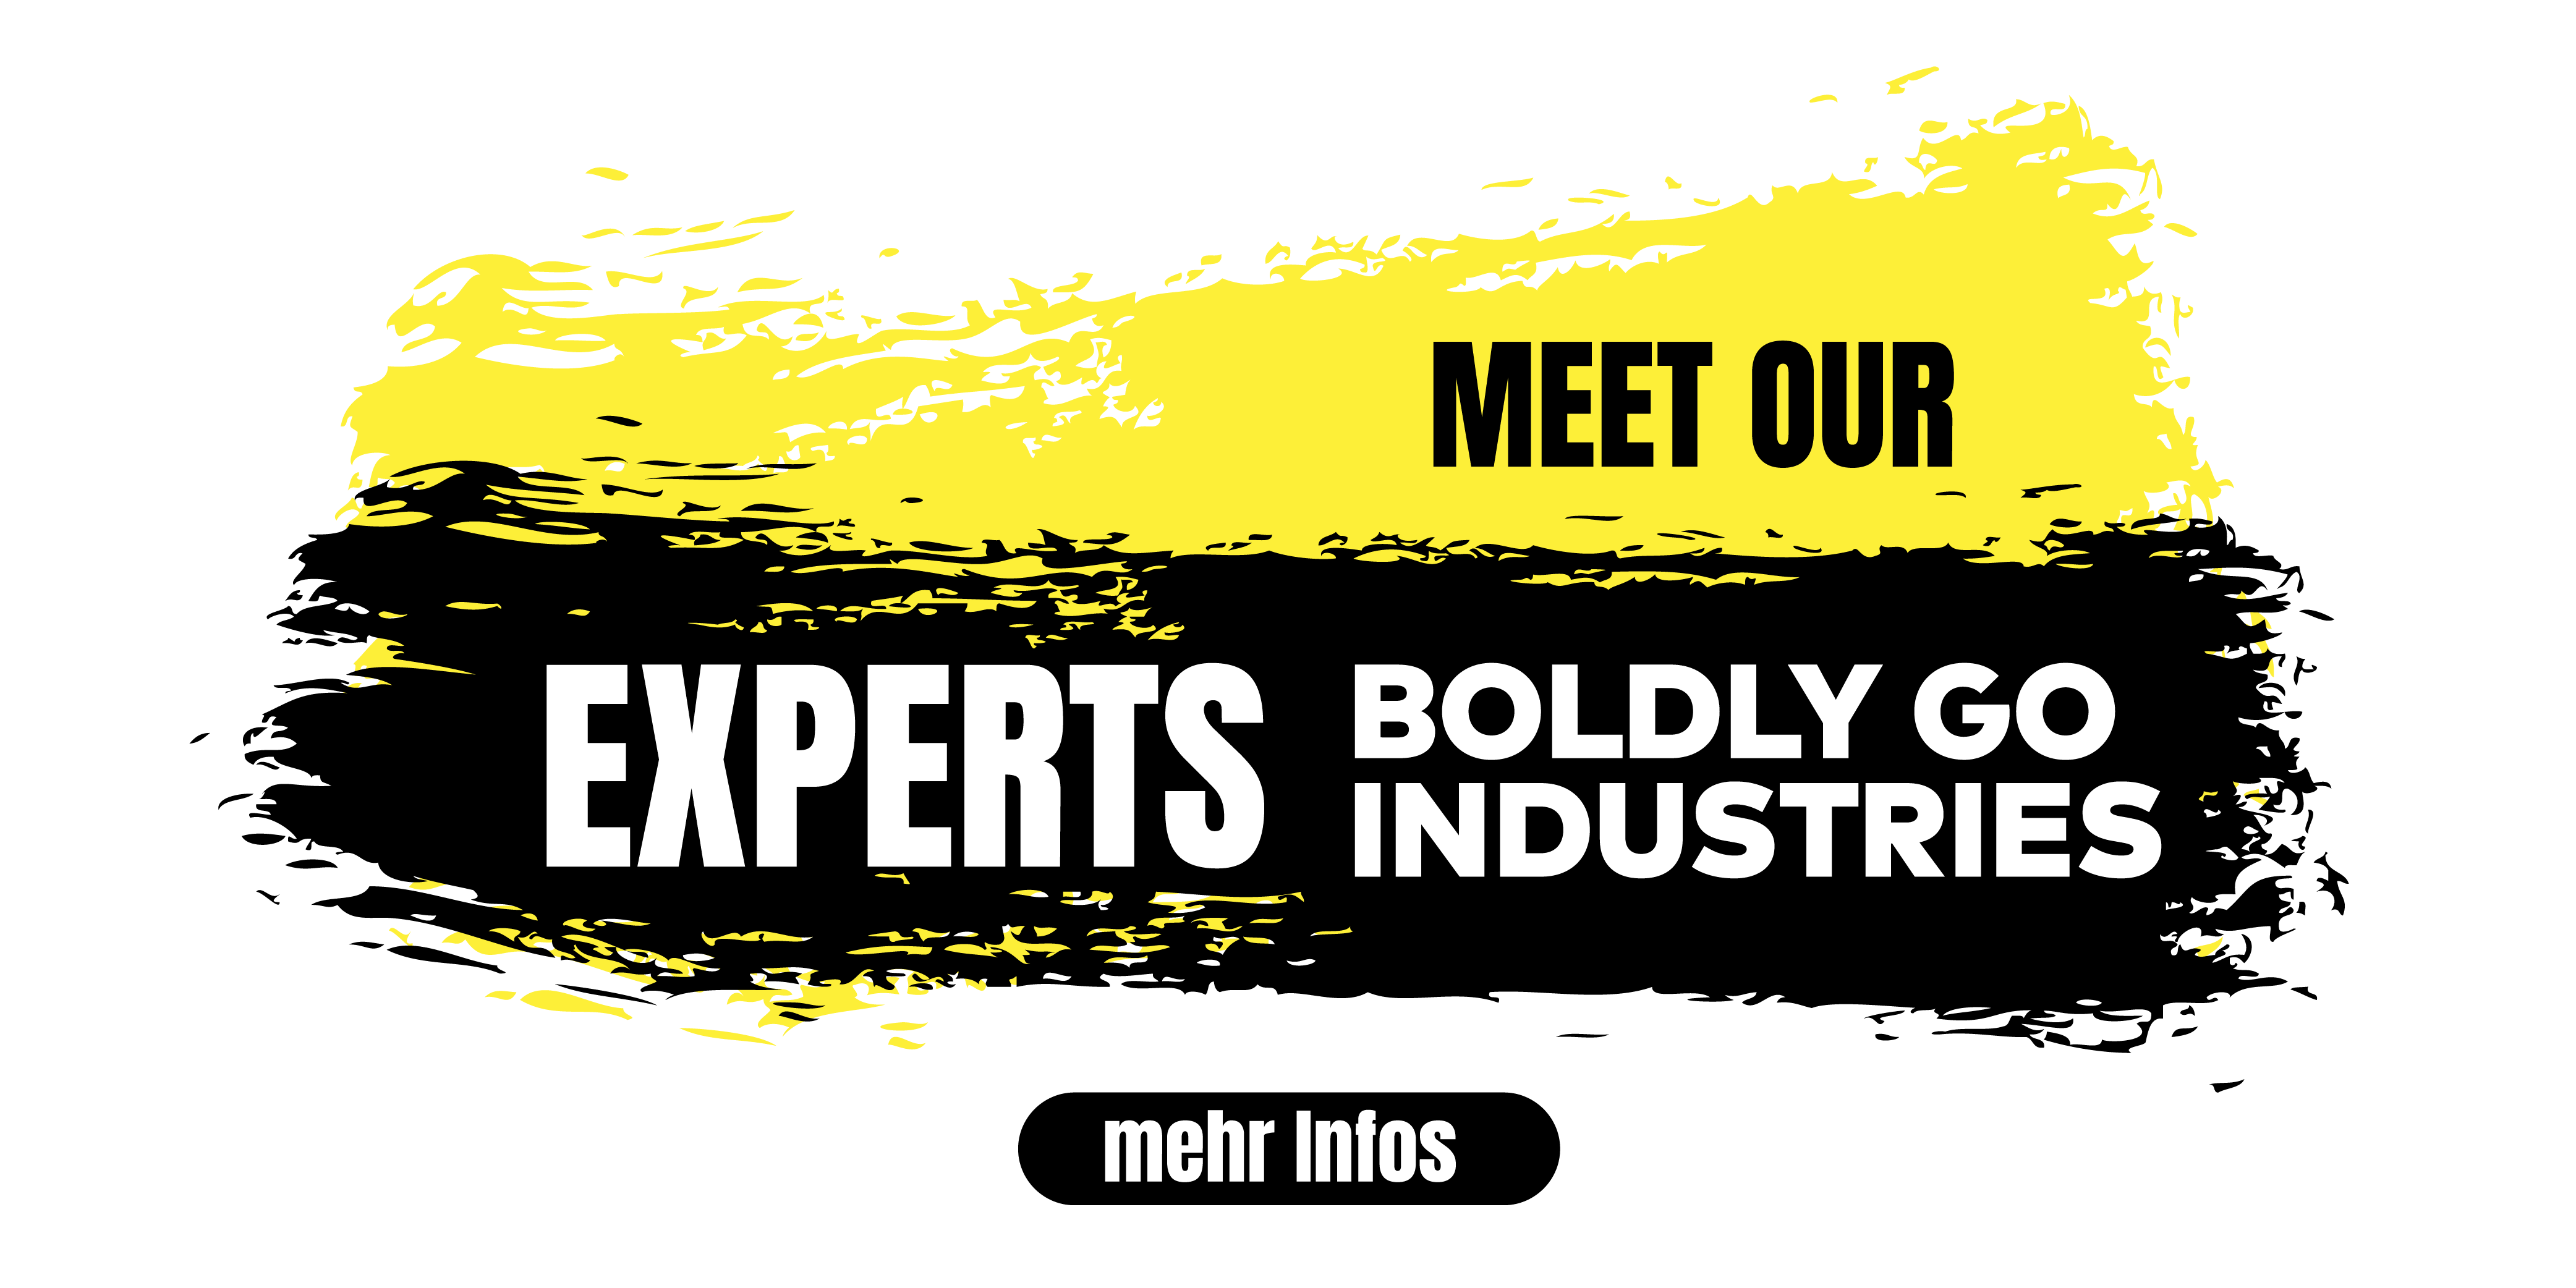 Meet our Experts, Boldy Go Industries